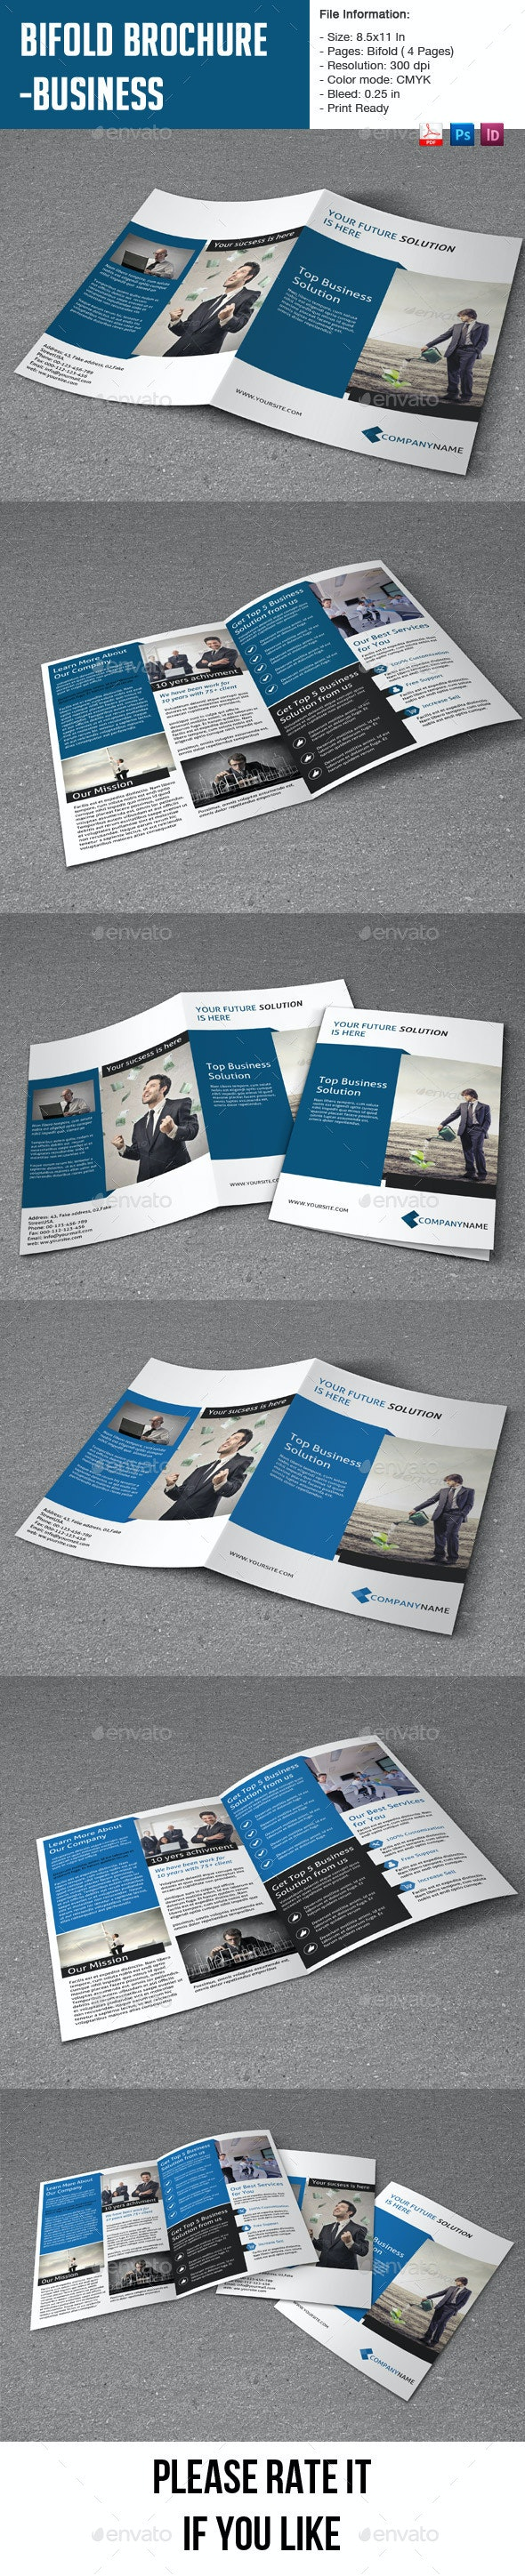 Bifold Brochure for Business-4 pages - Corporate Brochures